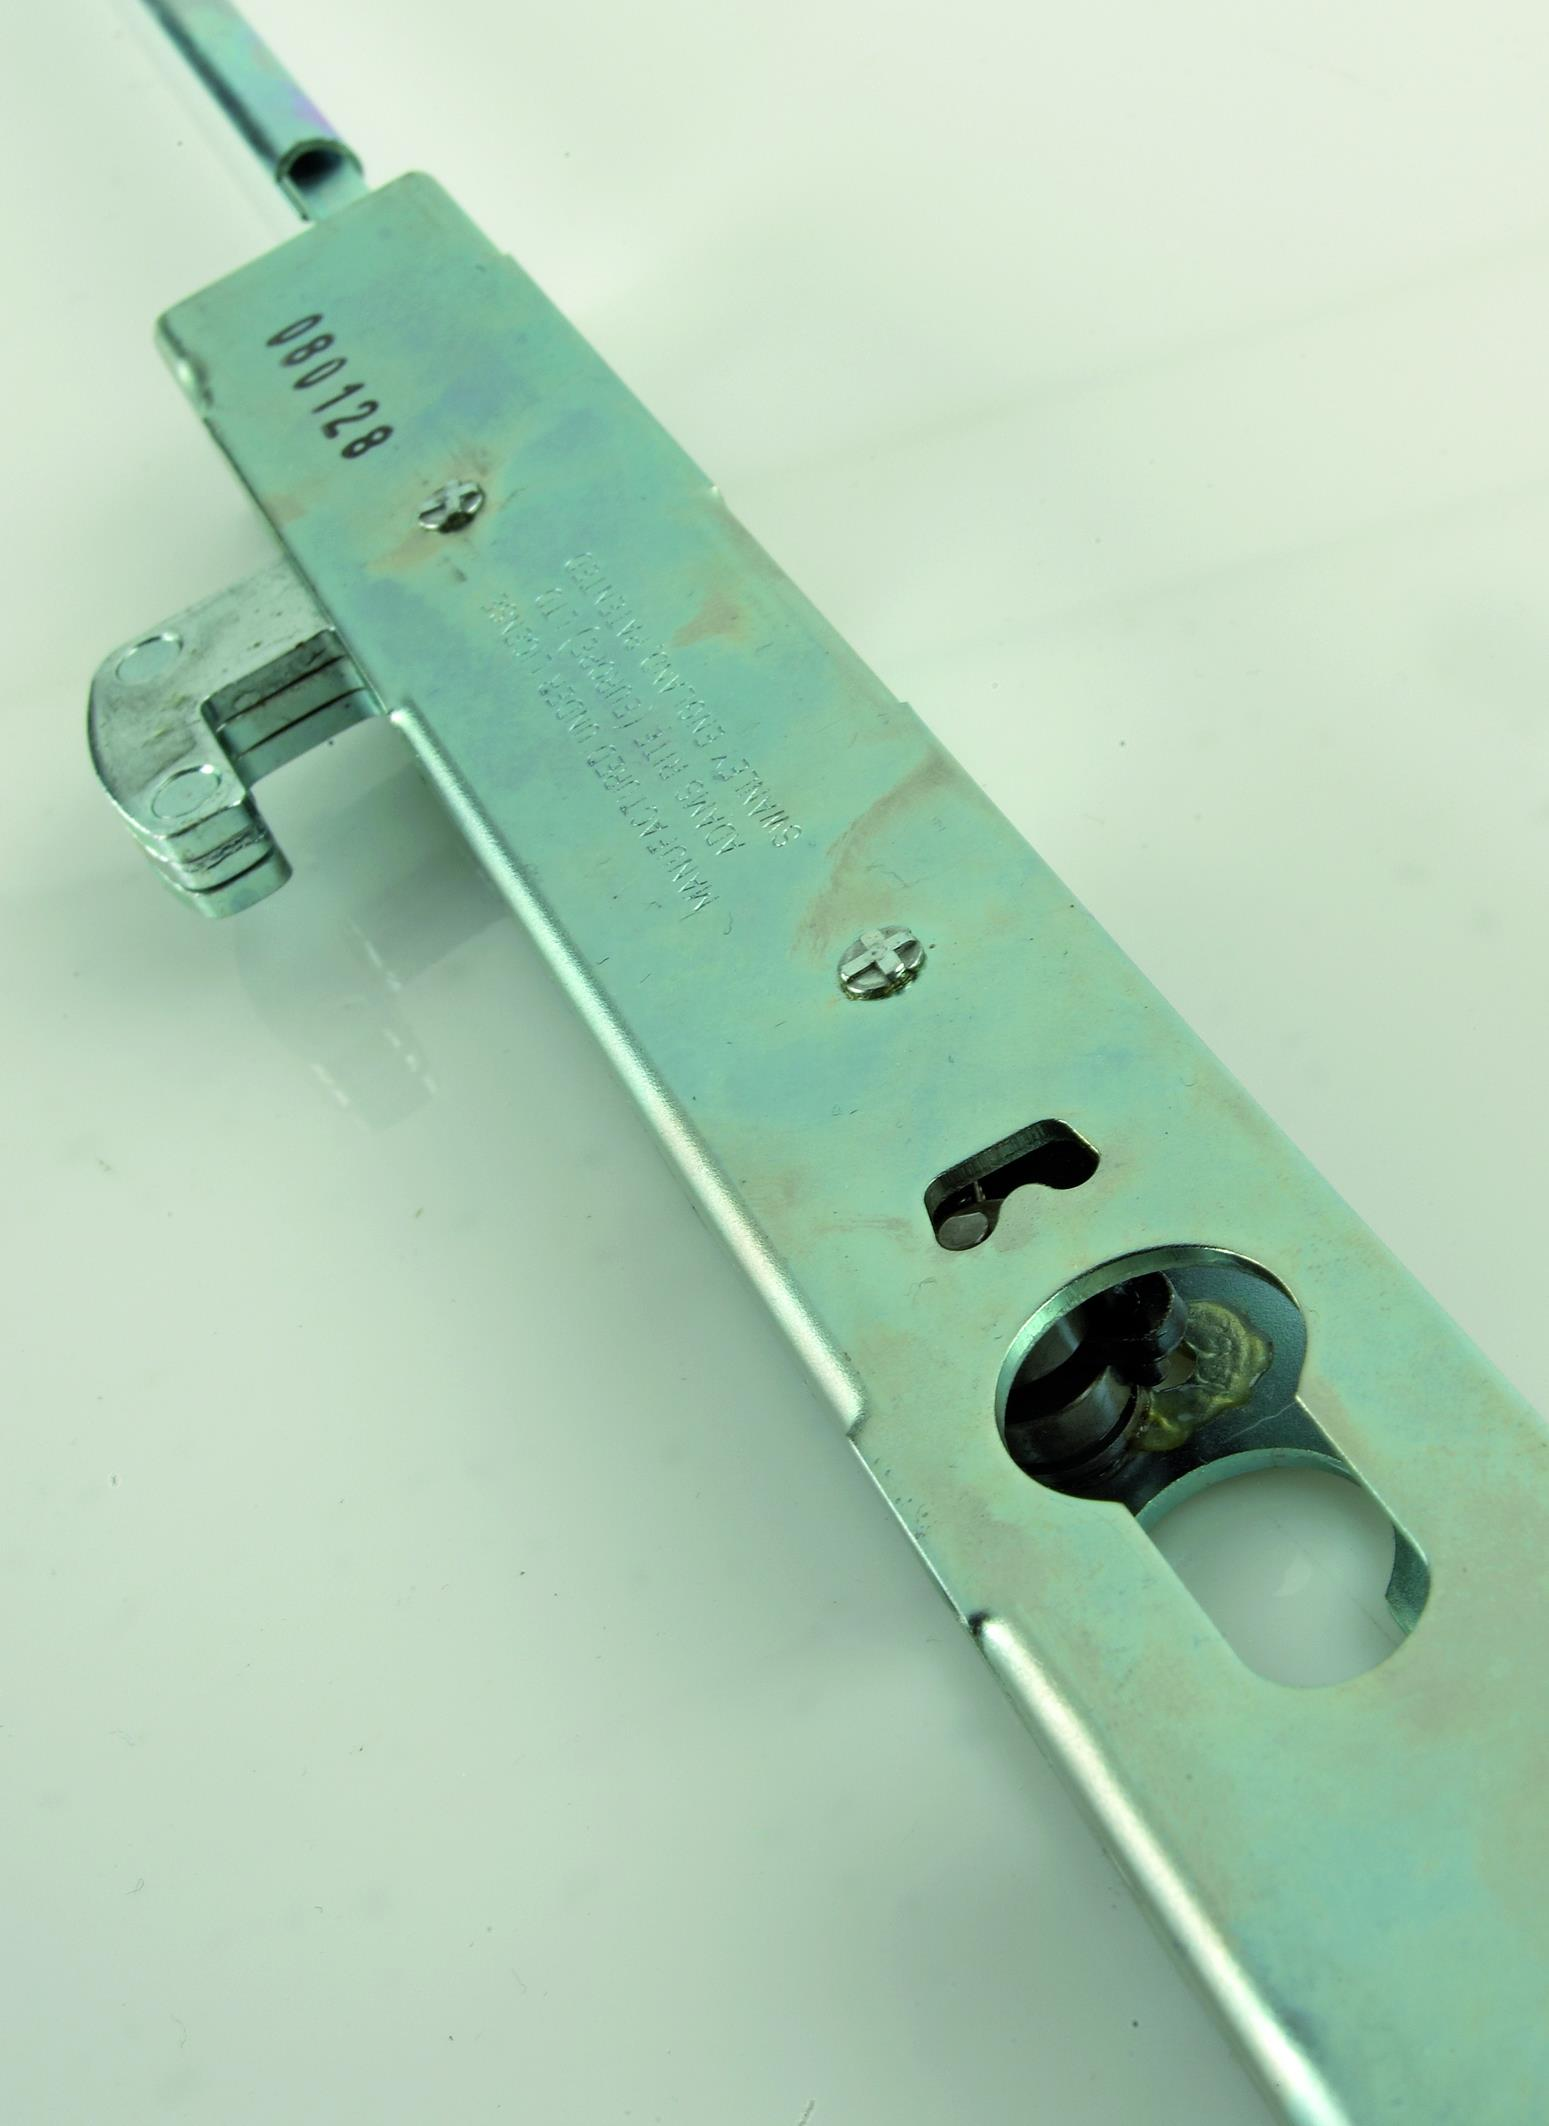 MS 1900 - Multipoint Locking System